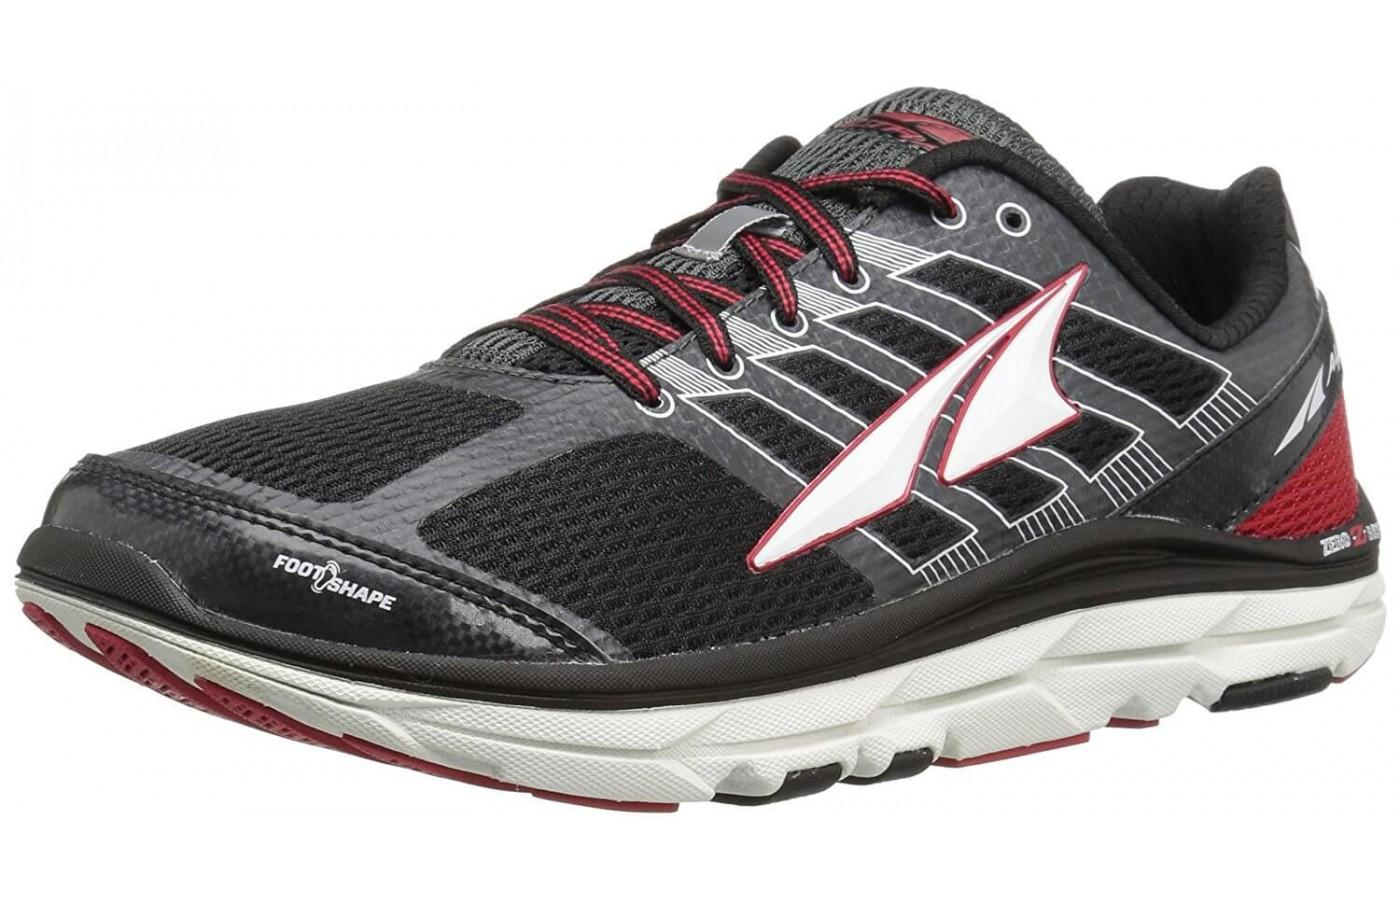 Altra Provision 3.0 is a sleek looking every day trainer